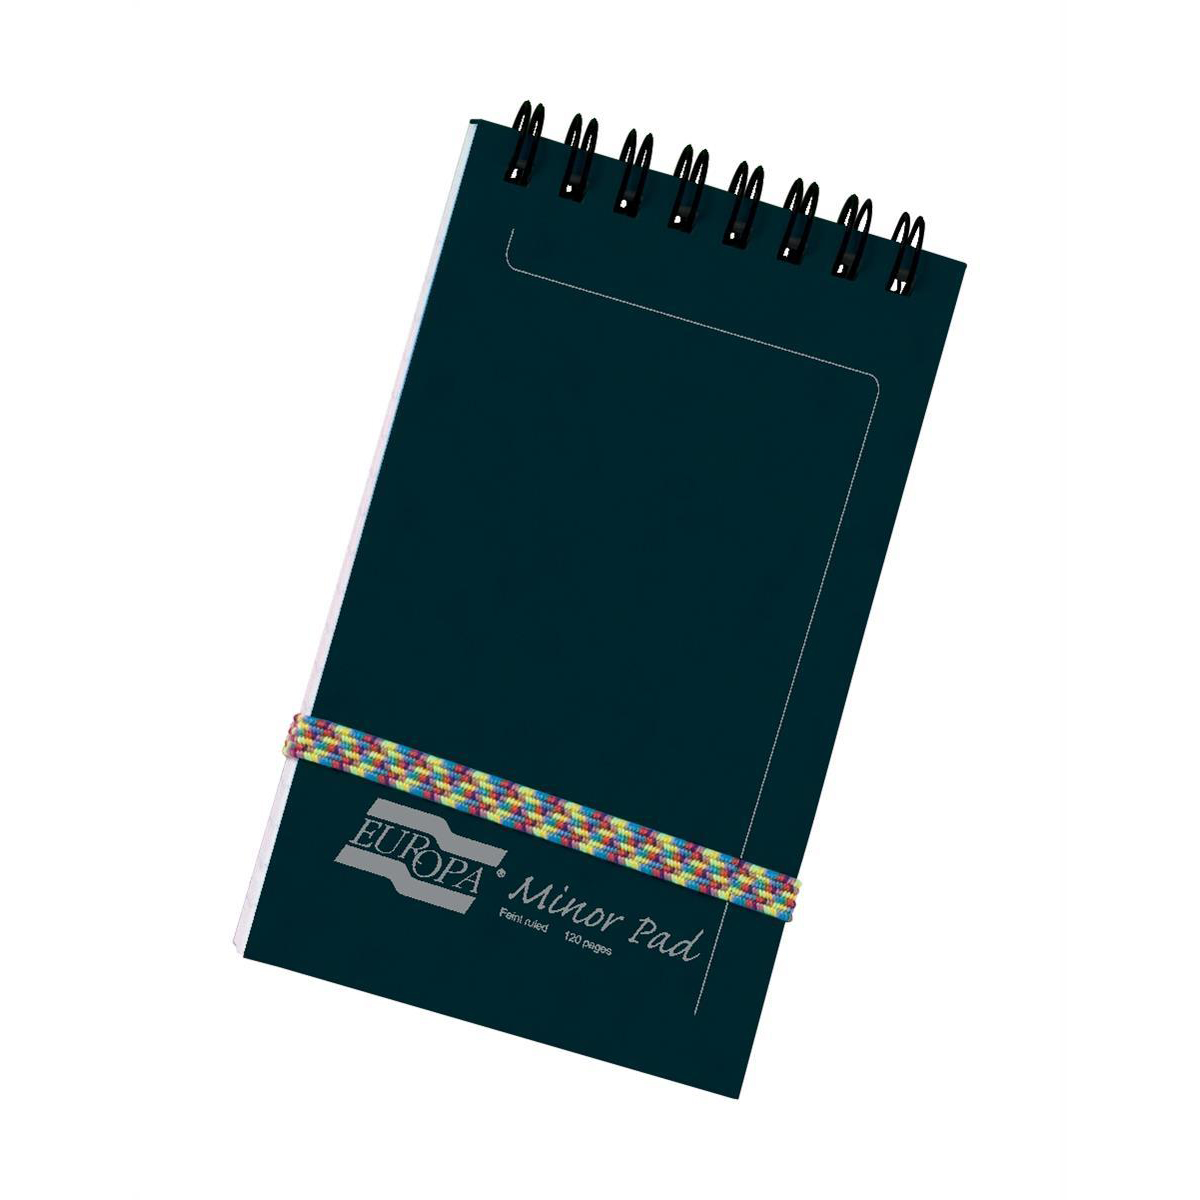 Europa Pad Twinwire Headbound 90gsm Ruled Micro Perforated 120pp 76x127mm Black Ref 3012Z Pack 10